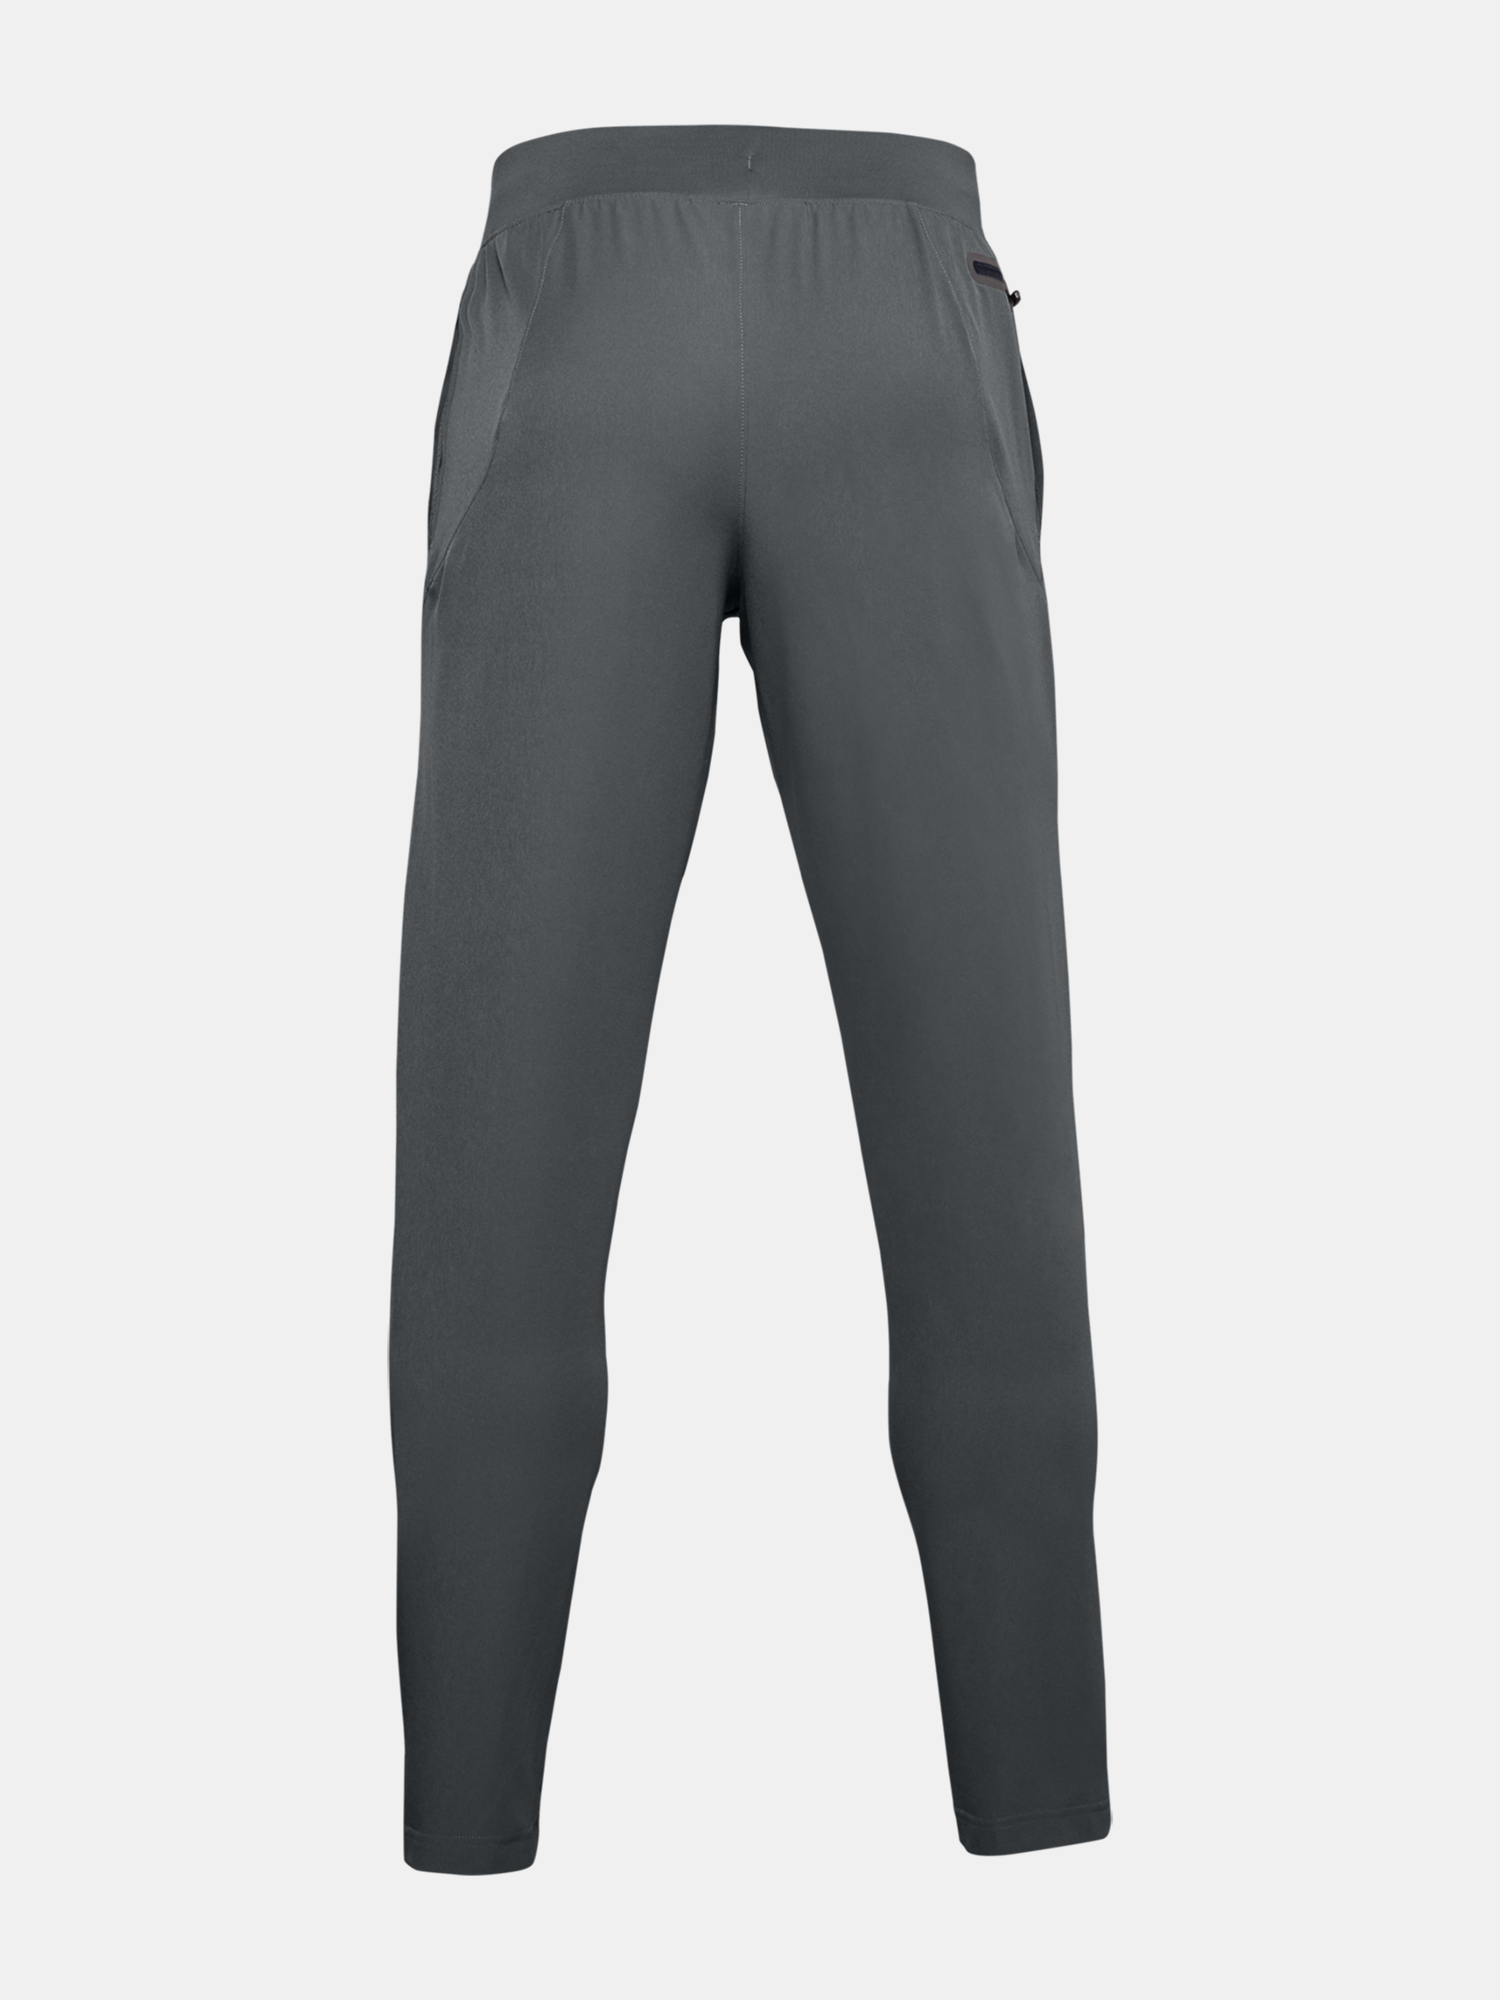 Tepláky Under Armour UA UNSTOPPABLE TAPERED PANTS-GRY (2)